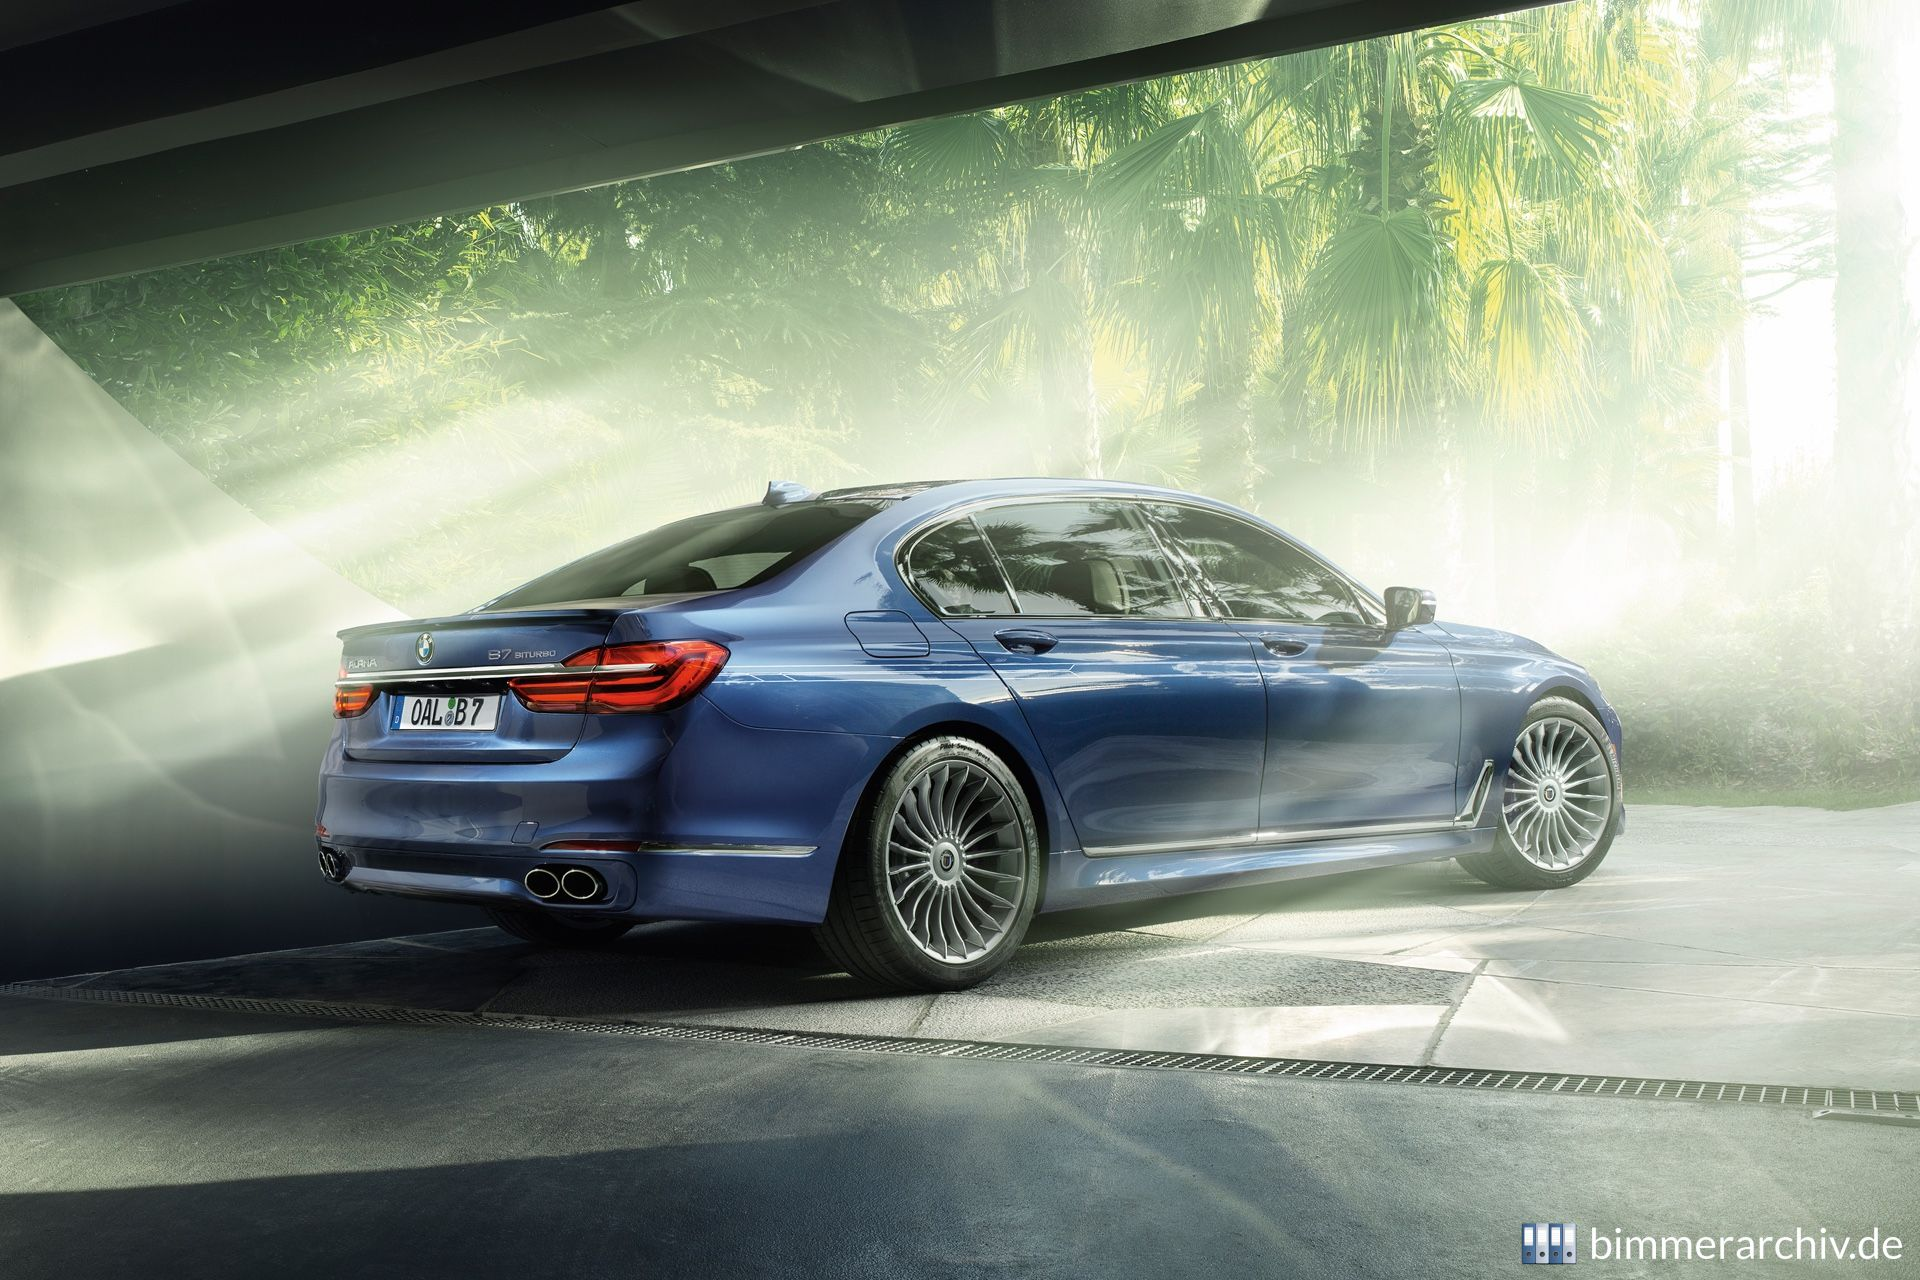 Model Archive For BMW Models BMW Alpina B BiTurbo Bmwarchiveorg - What is a bmw alpina b7